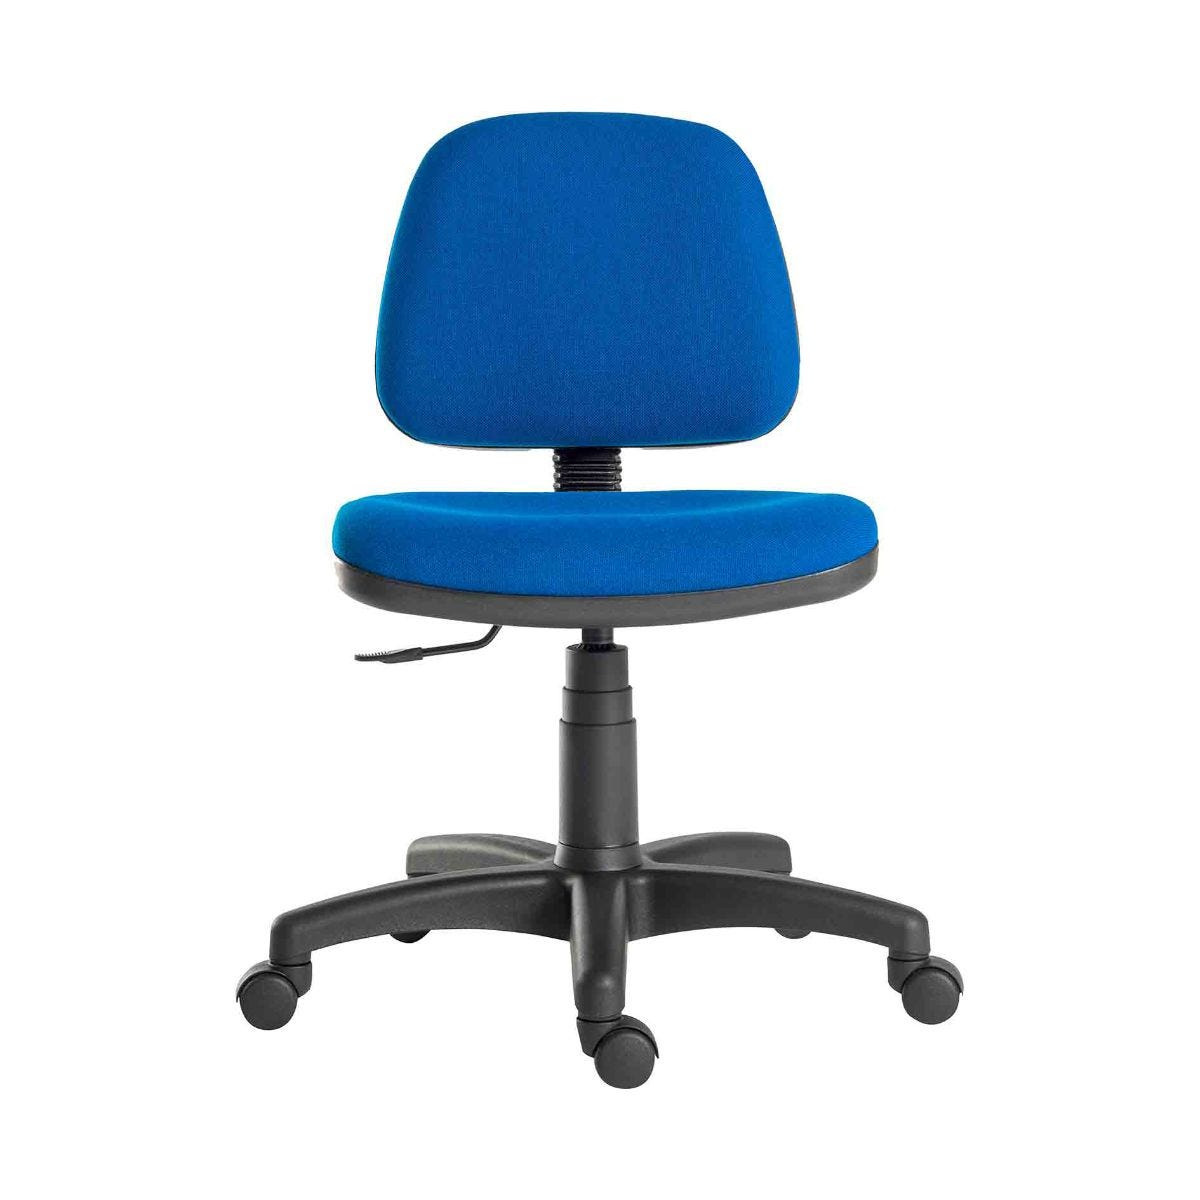 Astonishing Office Chairs Home Office Chairs Study Chairs Ryman Uk Gmtry Best Dining Table And Chair Ideas Images Gmtryco